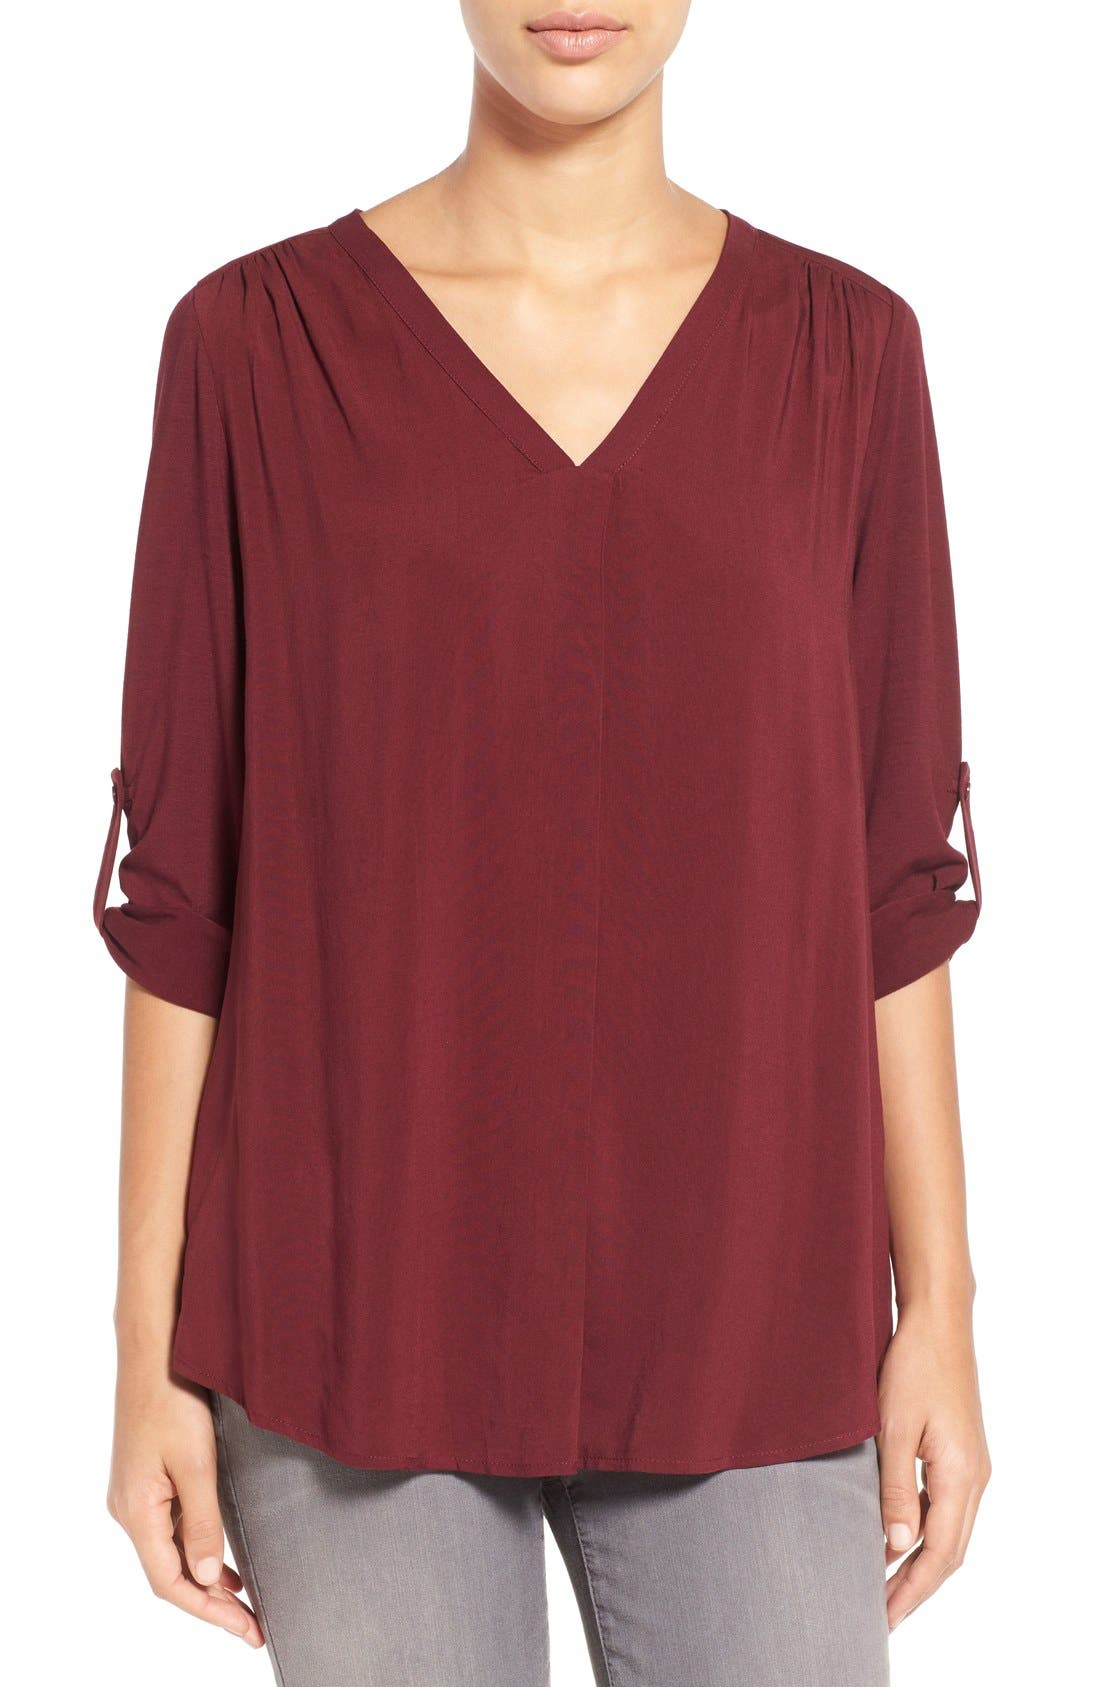 Alternate Image 1 Selected - Pleione Mixed Media V-Neck Tunic (Regular & Petite) (Nordstrom Exclusive)